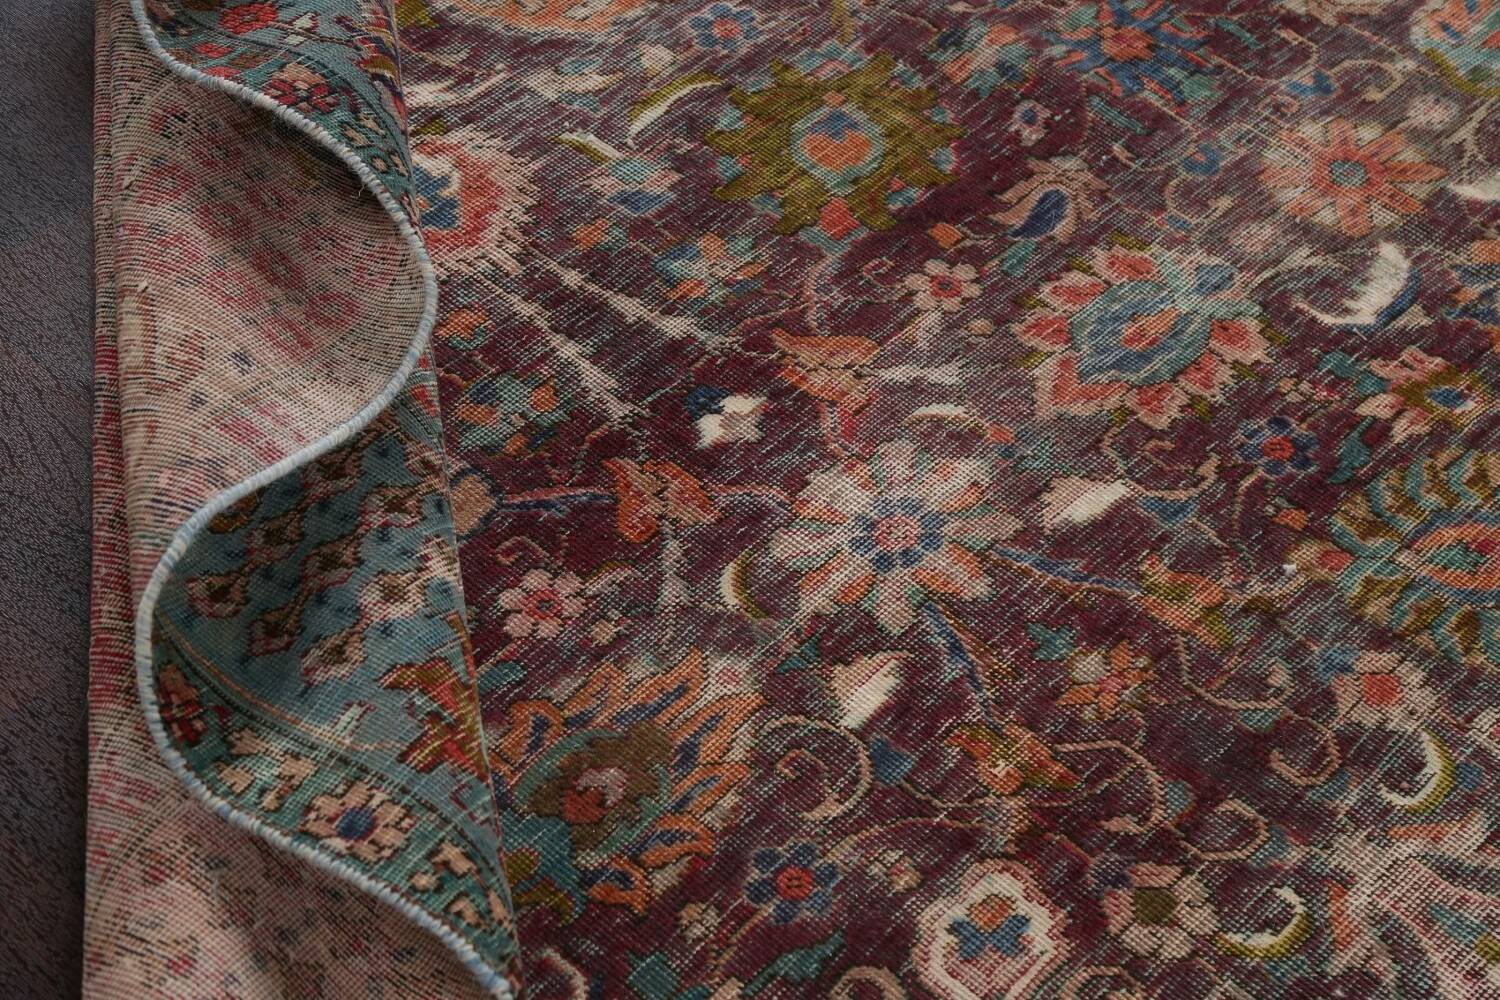 Antique Over-Dyed Tabriz Persian Area Rug 9x12 image 17